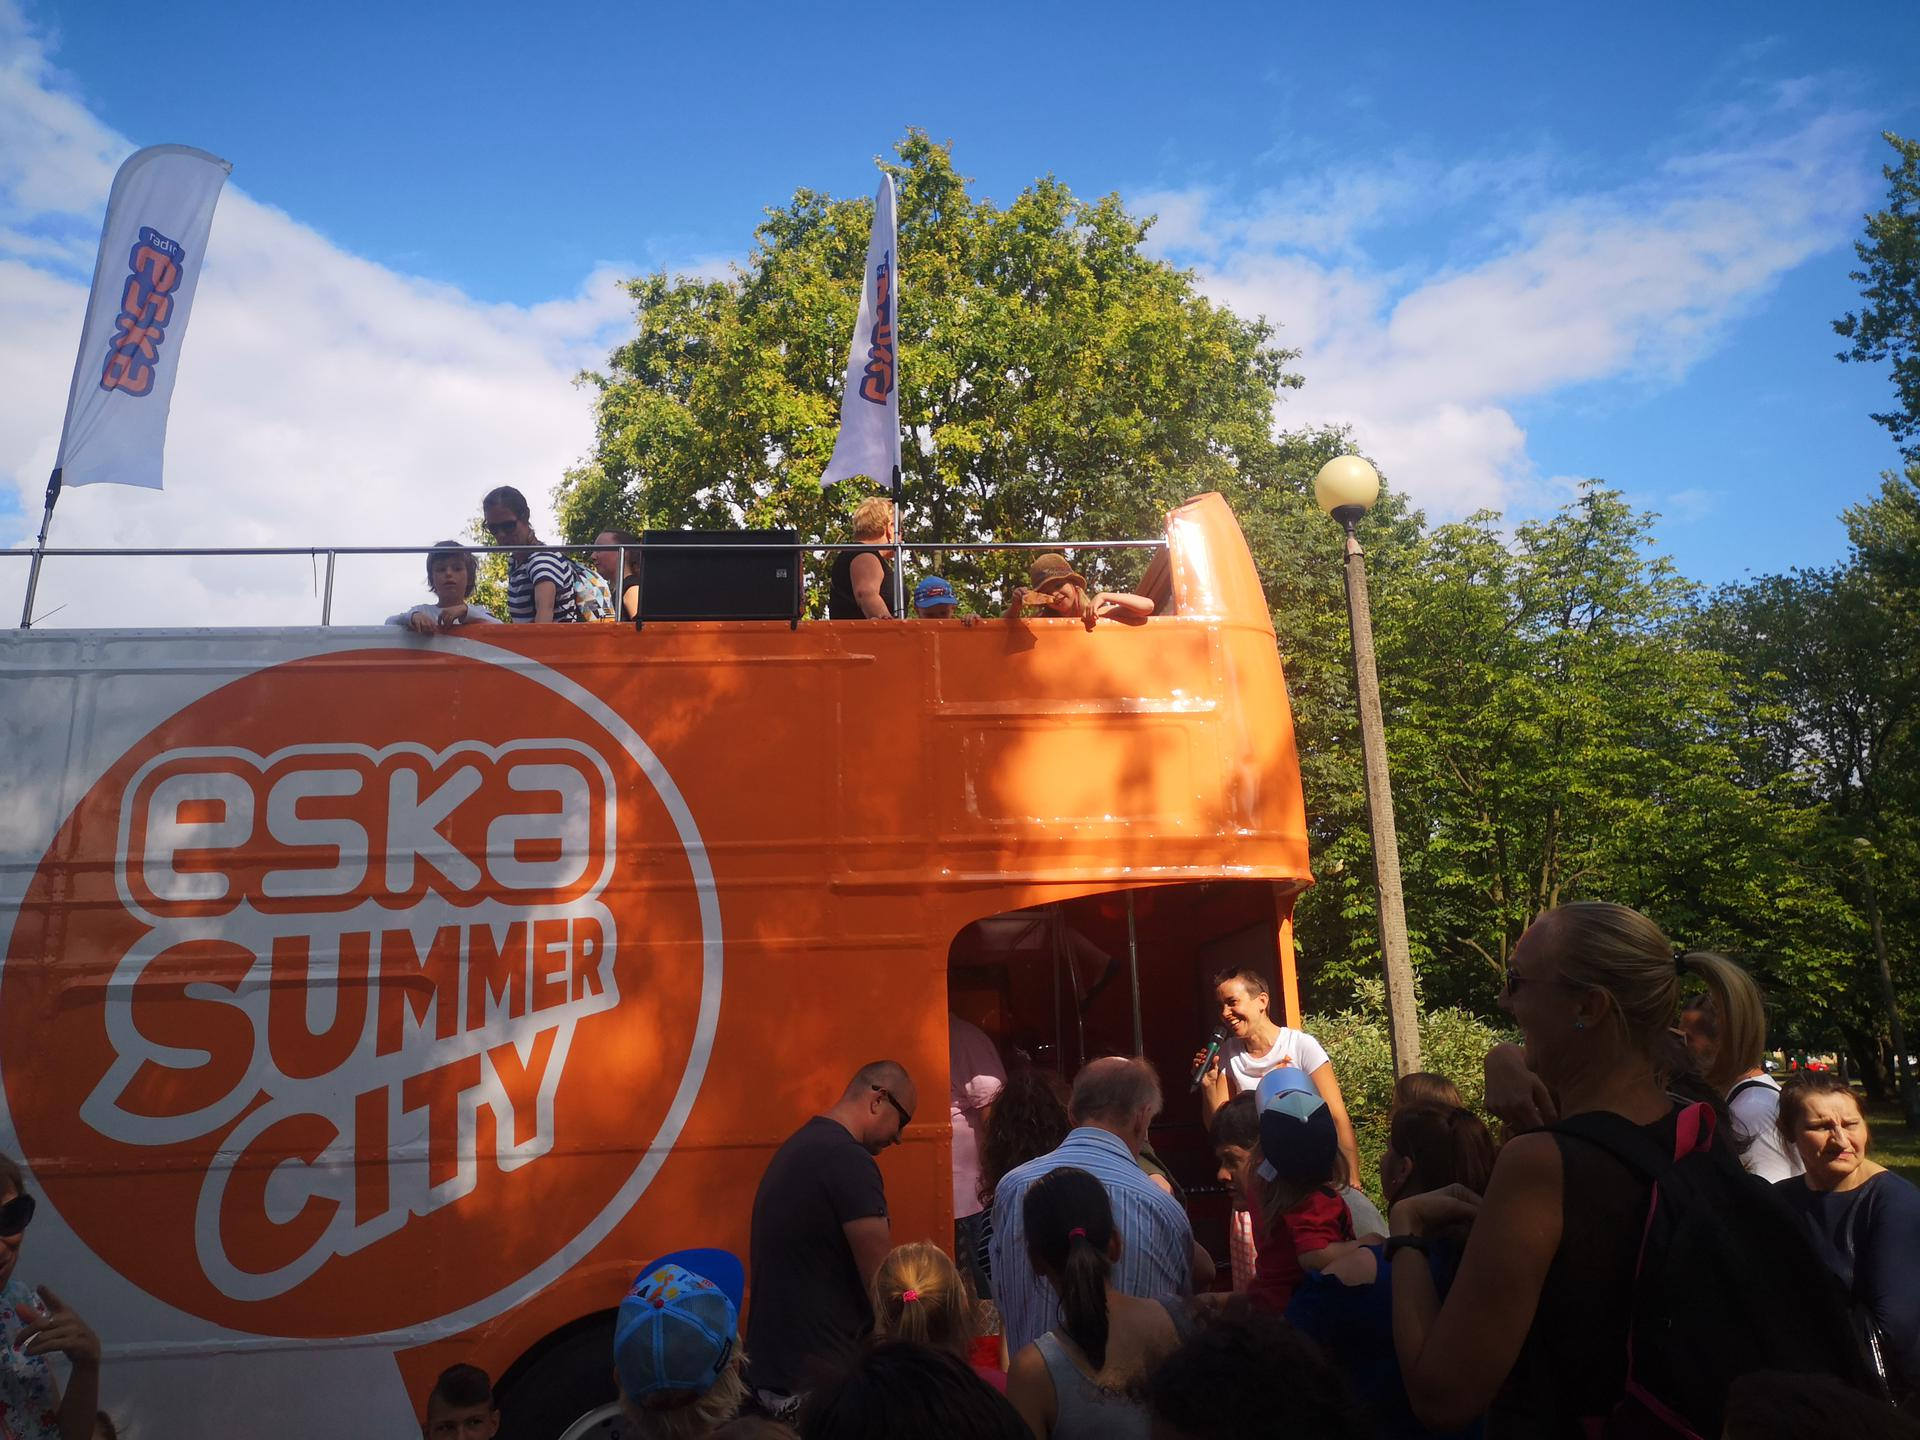 ESKA Summer City Bus